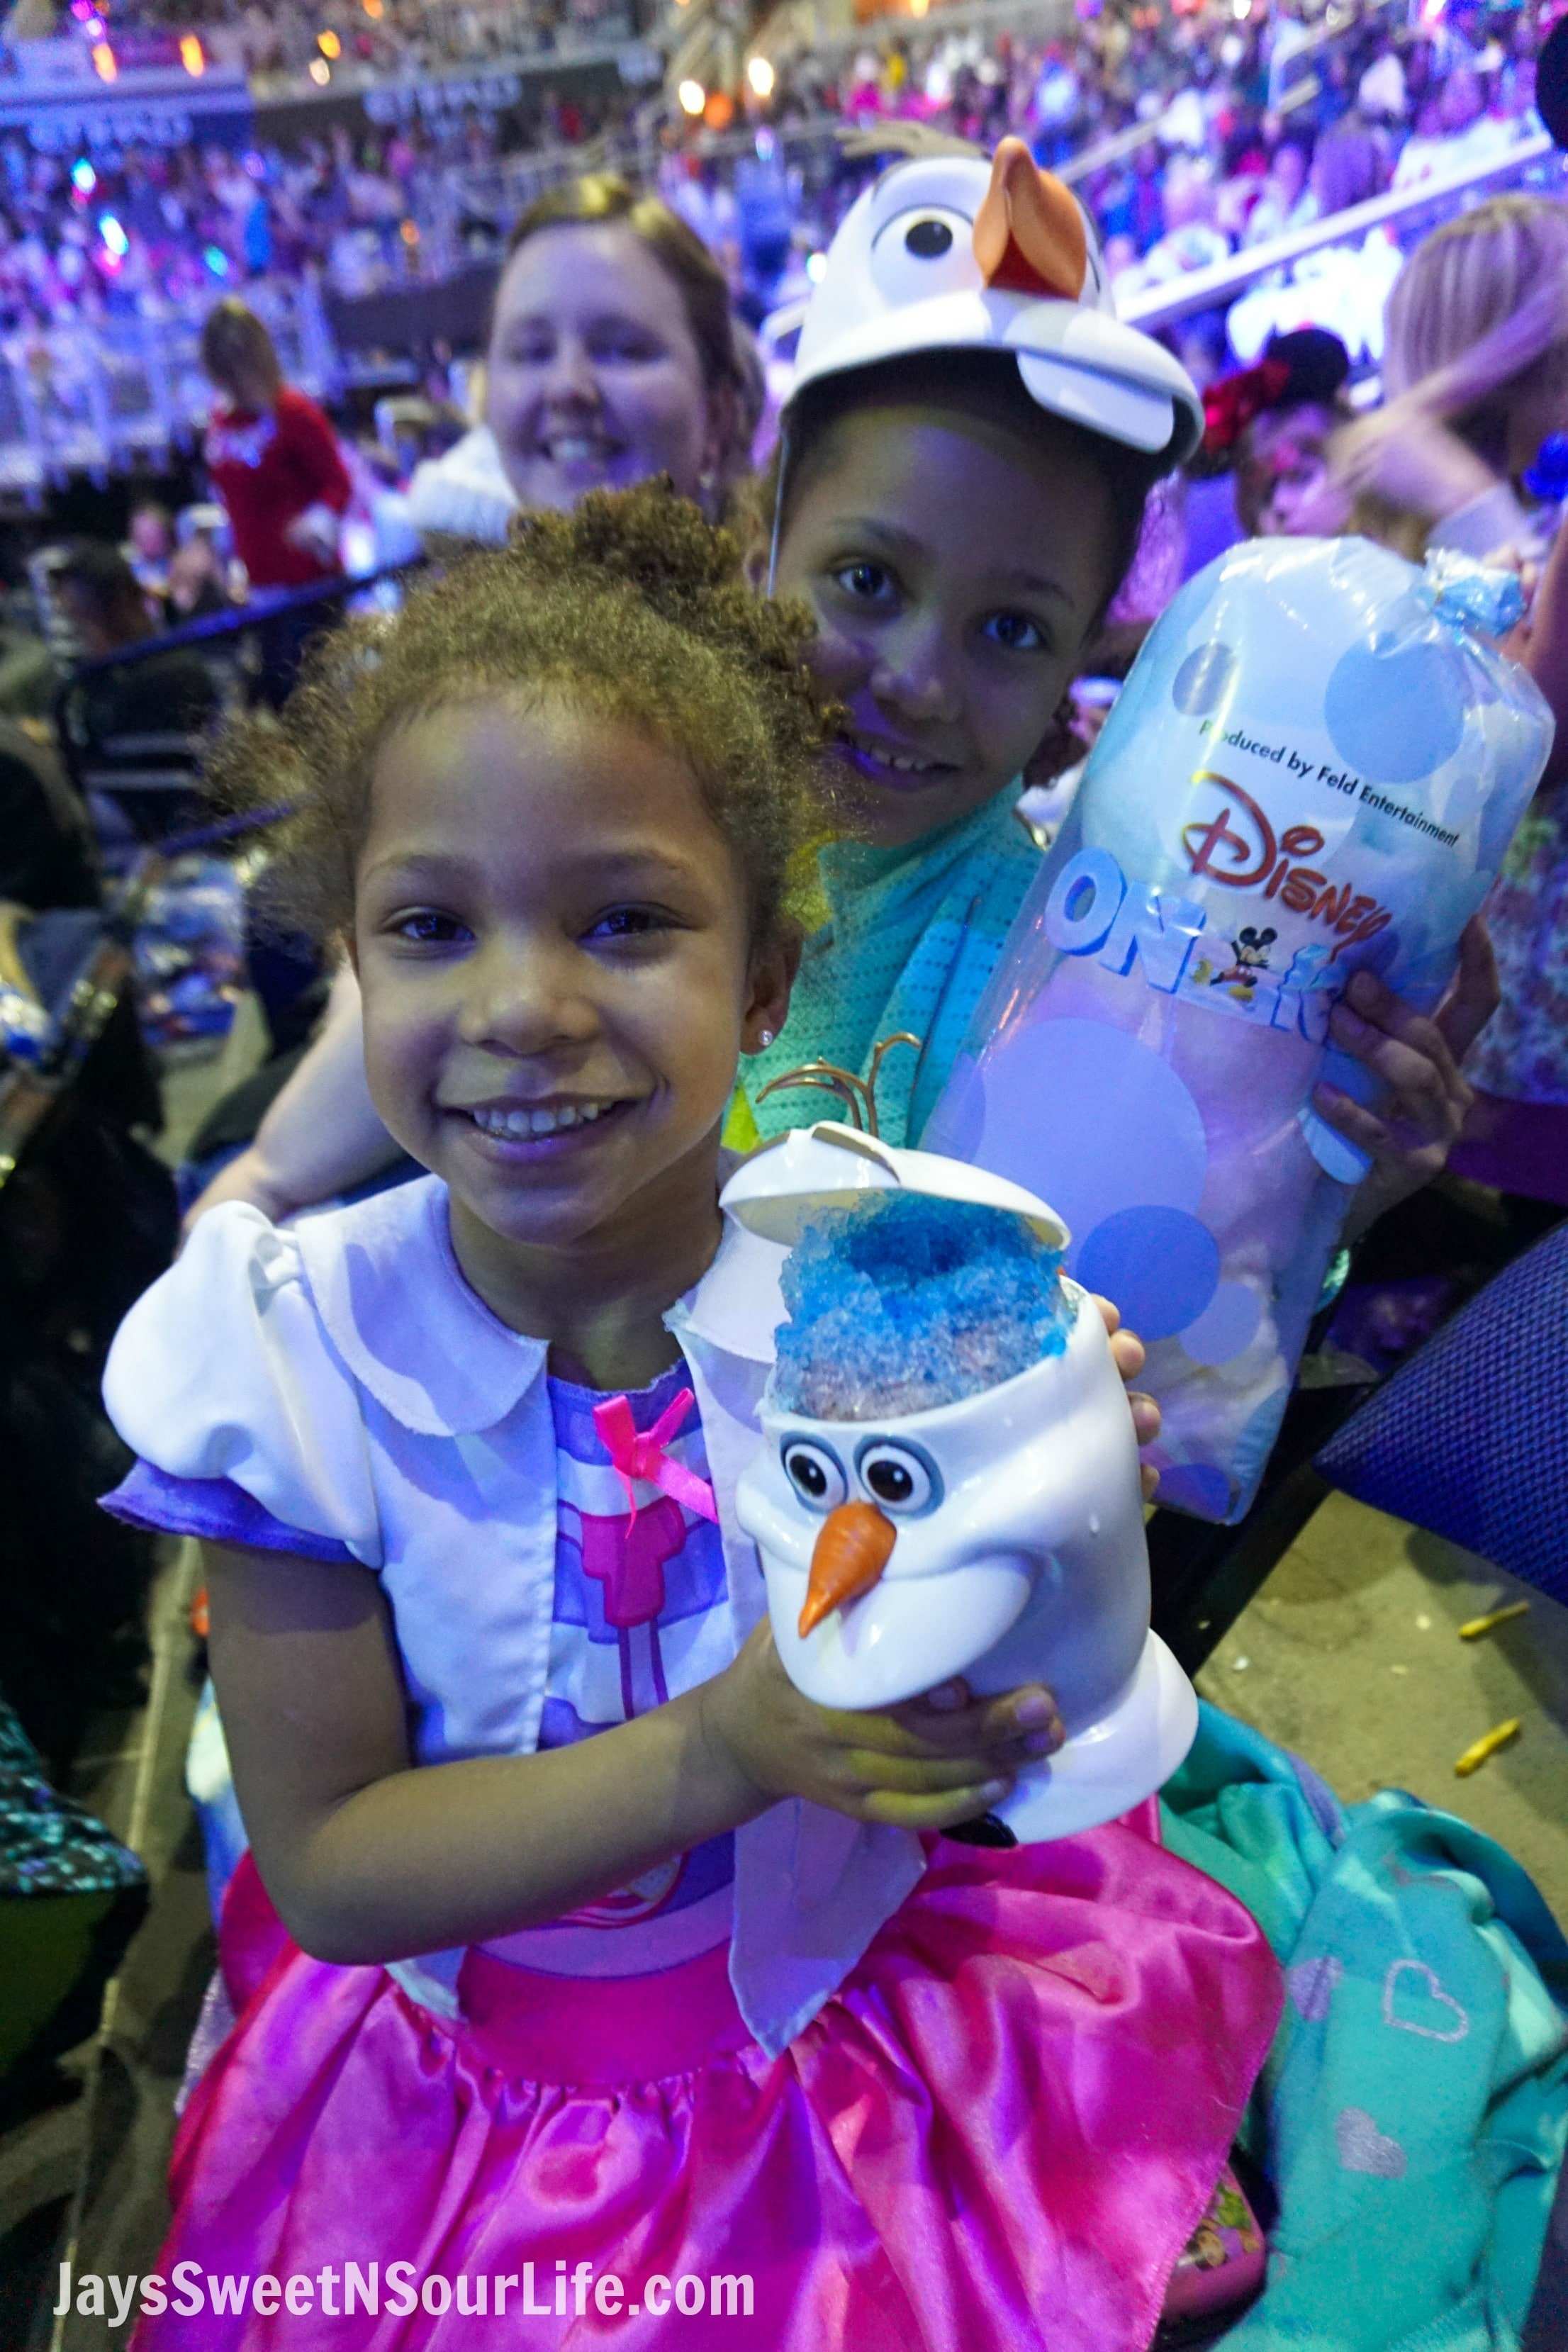 Disney On Ice Presents Frozen coming to a town near you. Intermission time when the girls recieved Cotton Candy and Olad Slushies.